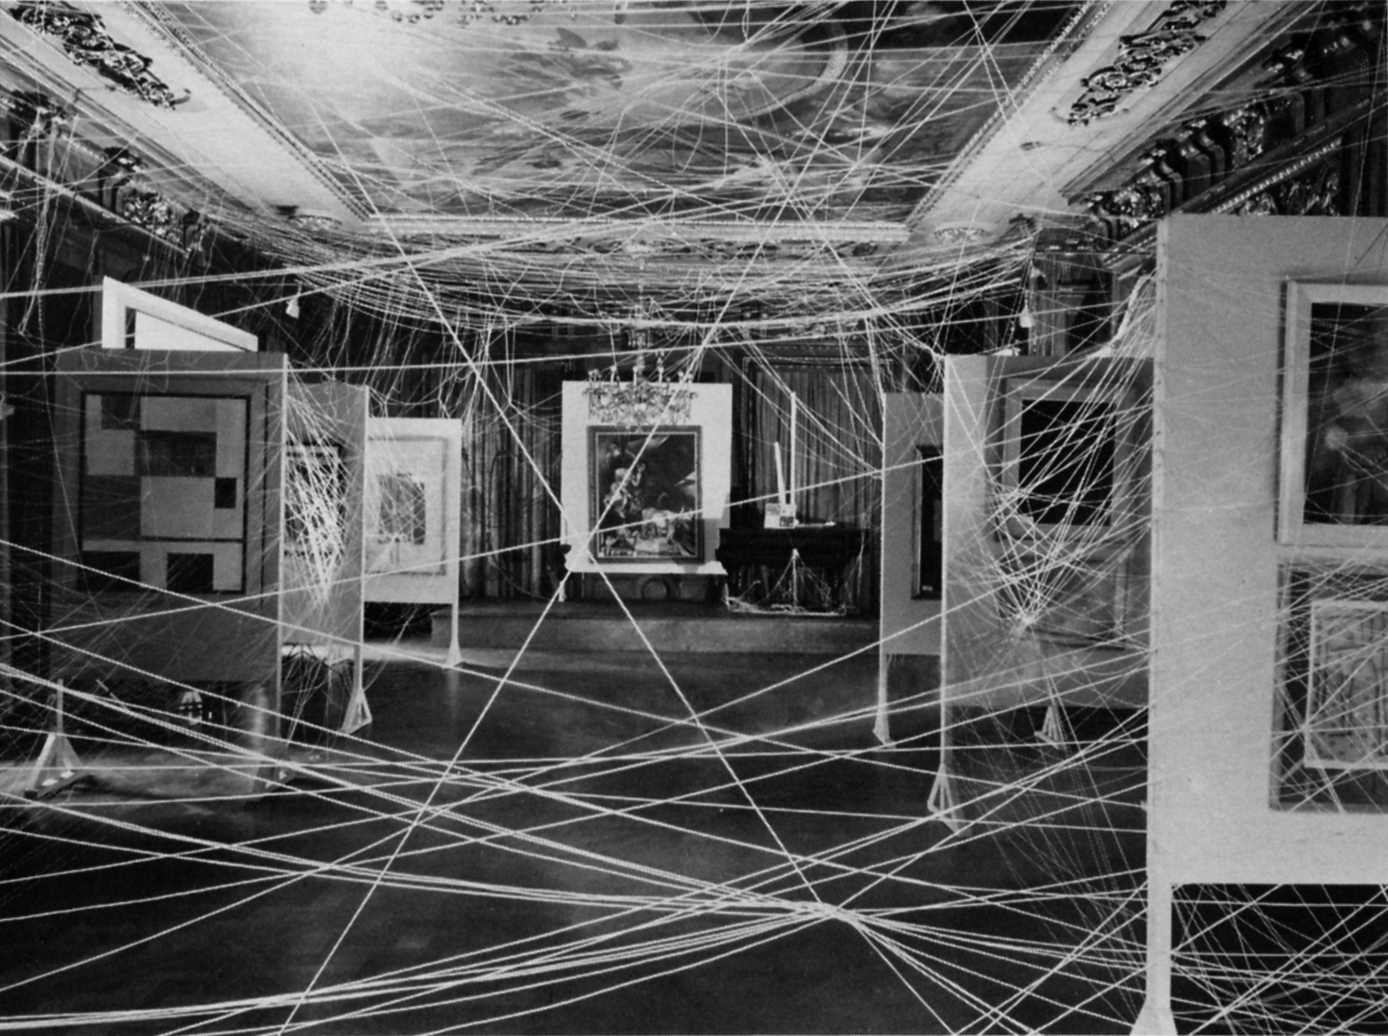 Installation of Duchamp's &quot;First Papers of Surrealism&quot;